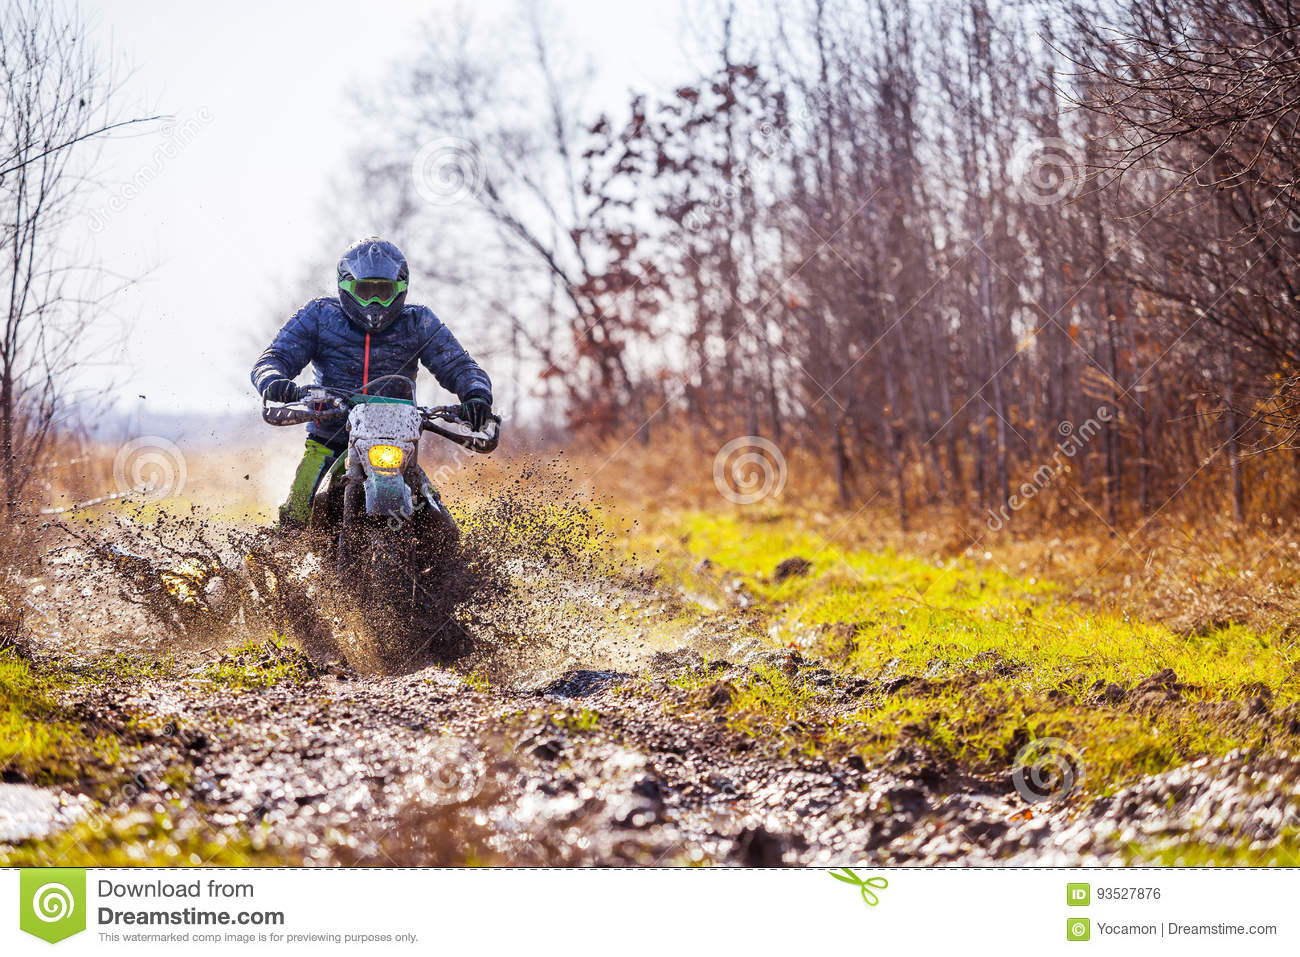 The Man On A Motorcycle Rides Through The Mud Stock Image